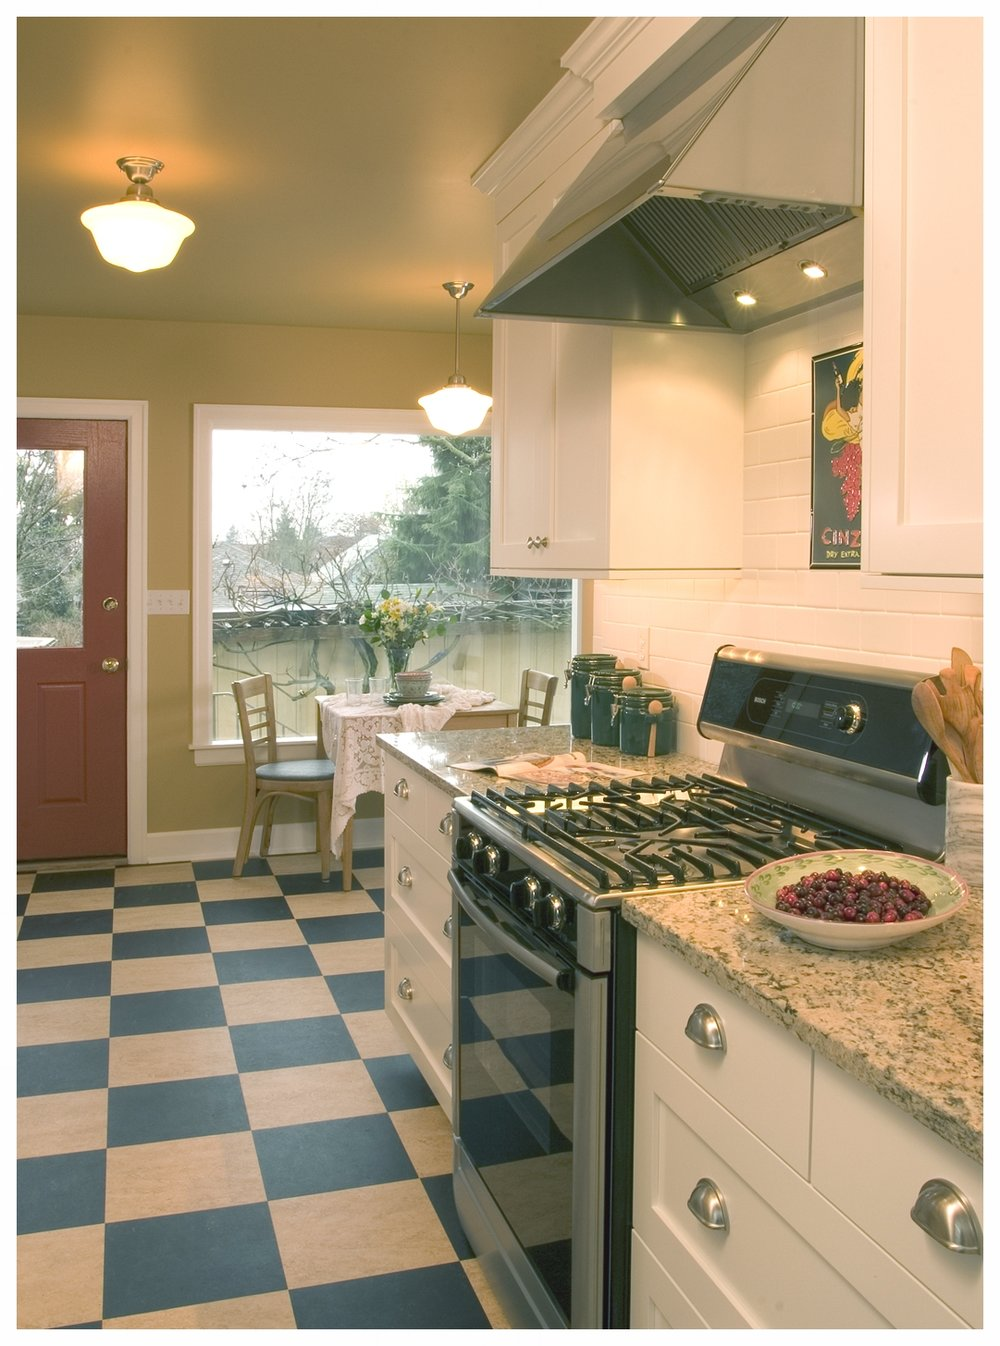 Ballard Bungalow Kitchen 3.jpg